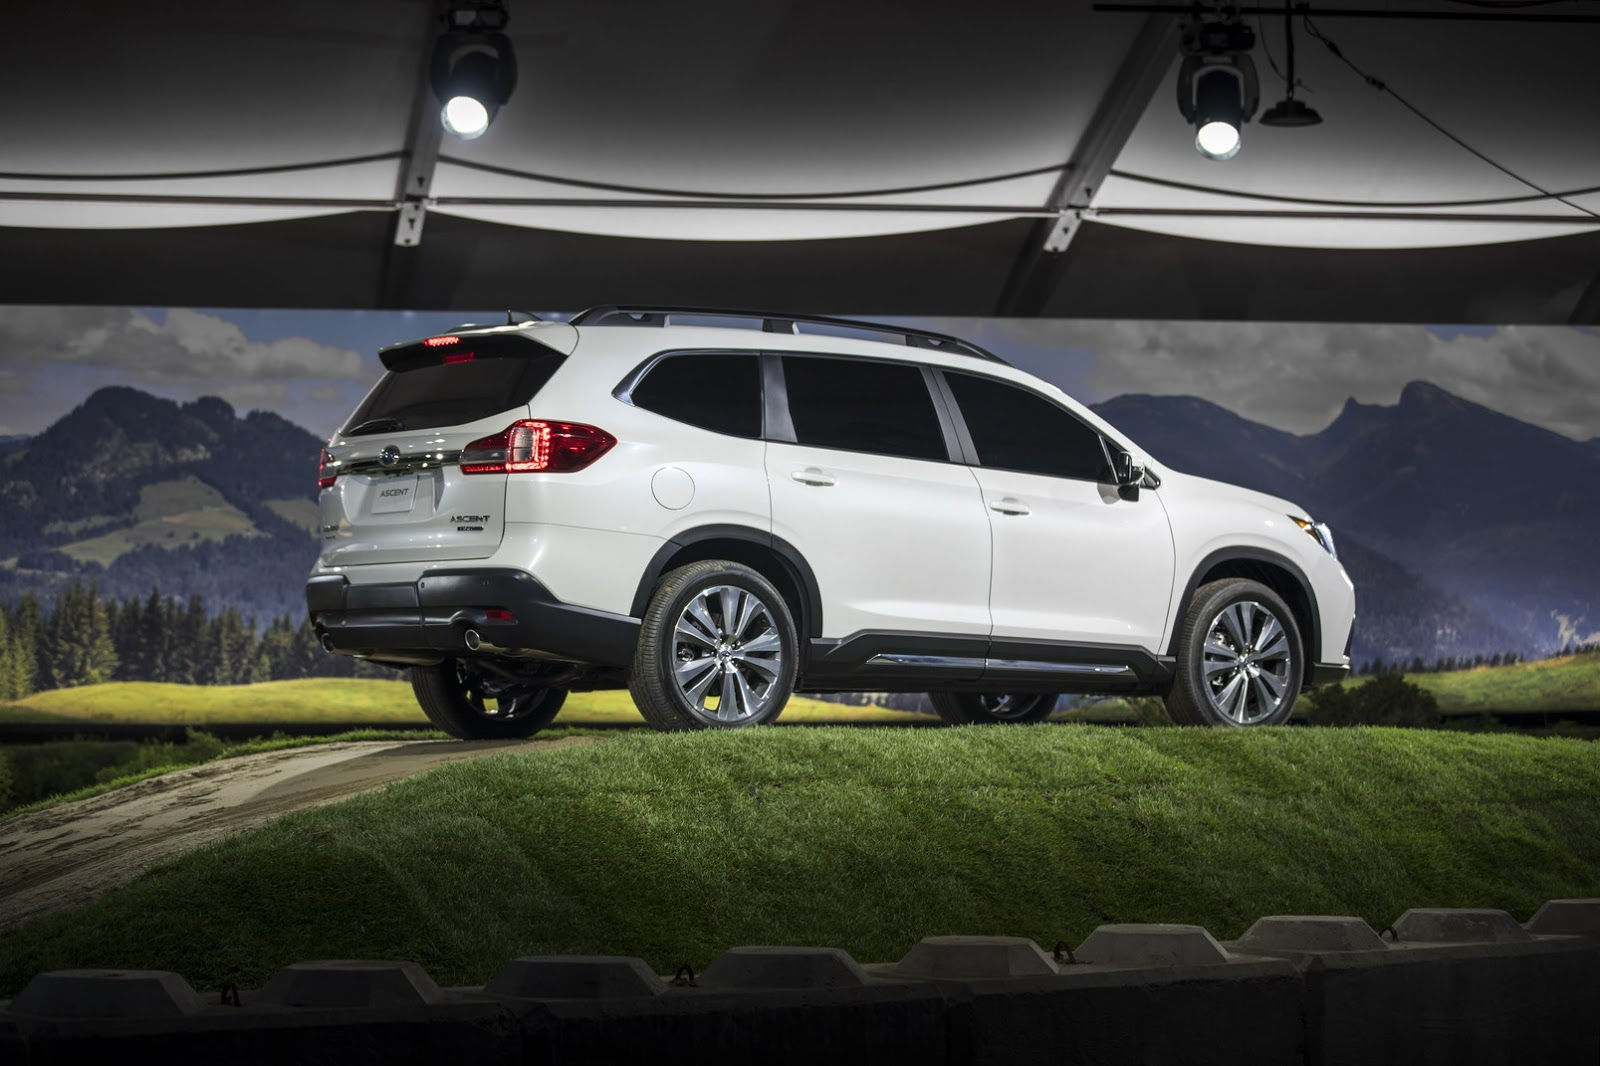 Outback Subaru Forester >> 2019 Subaru Ascent Production Will Create New Jobs At Indiana Plant - autoevolution